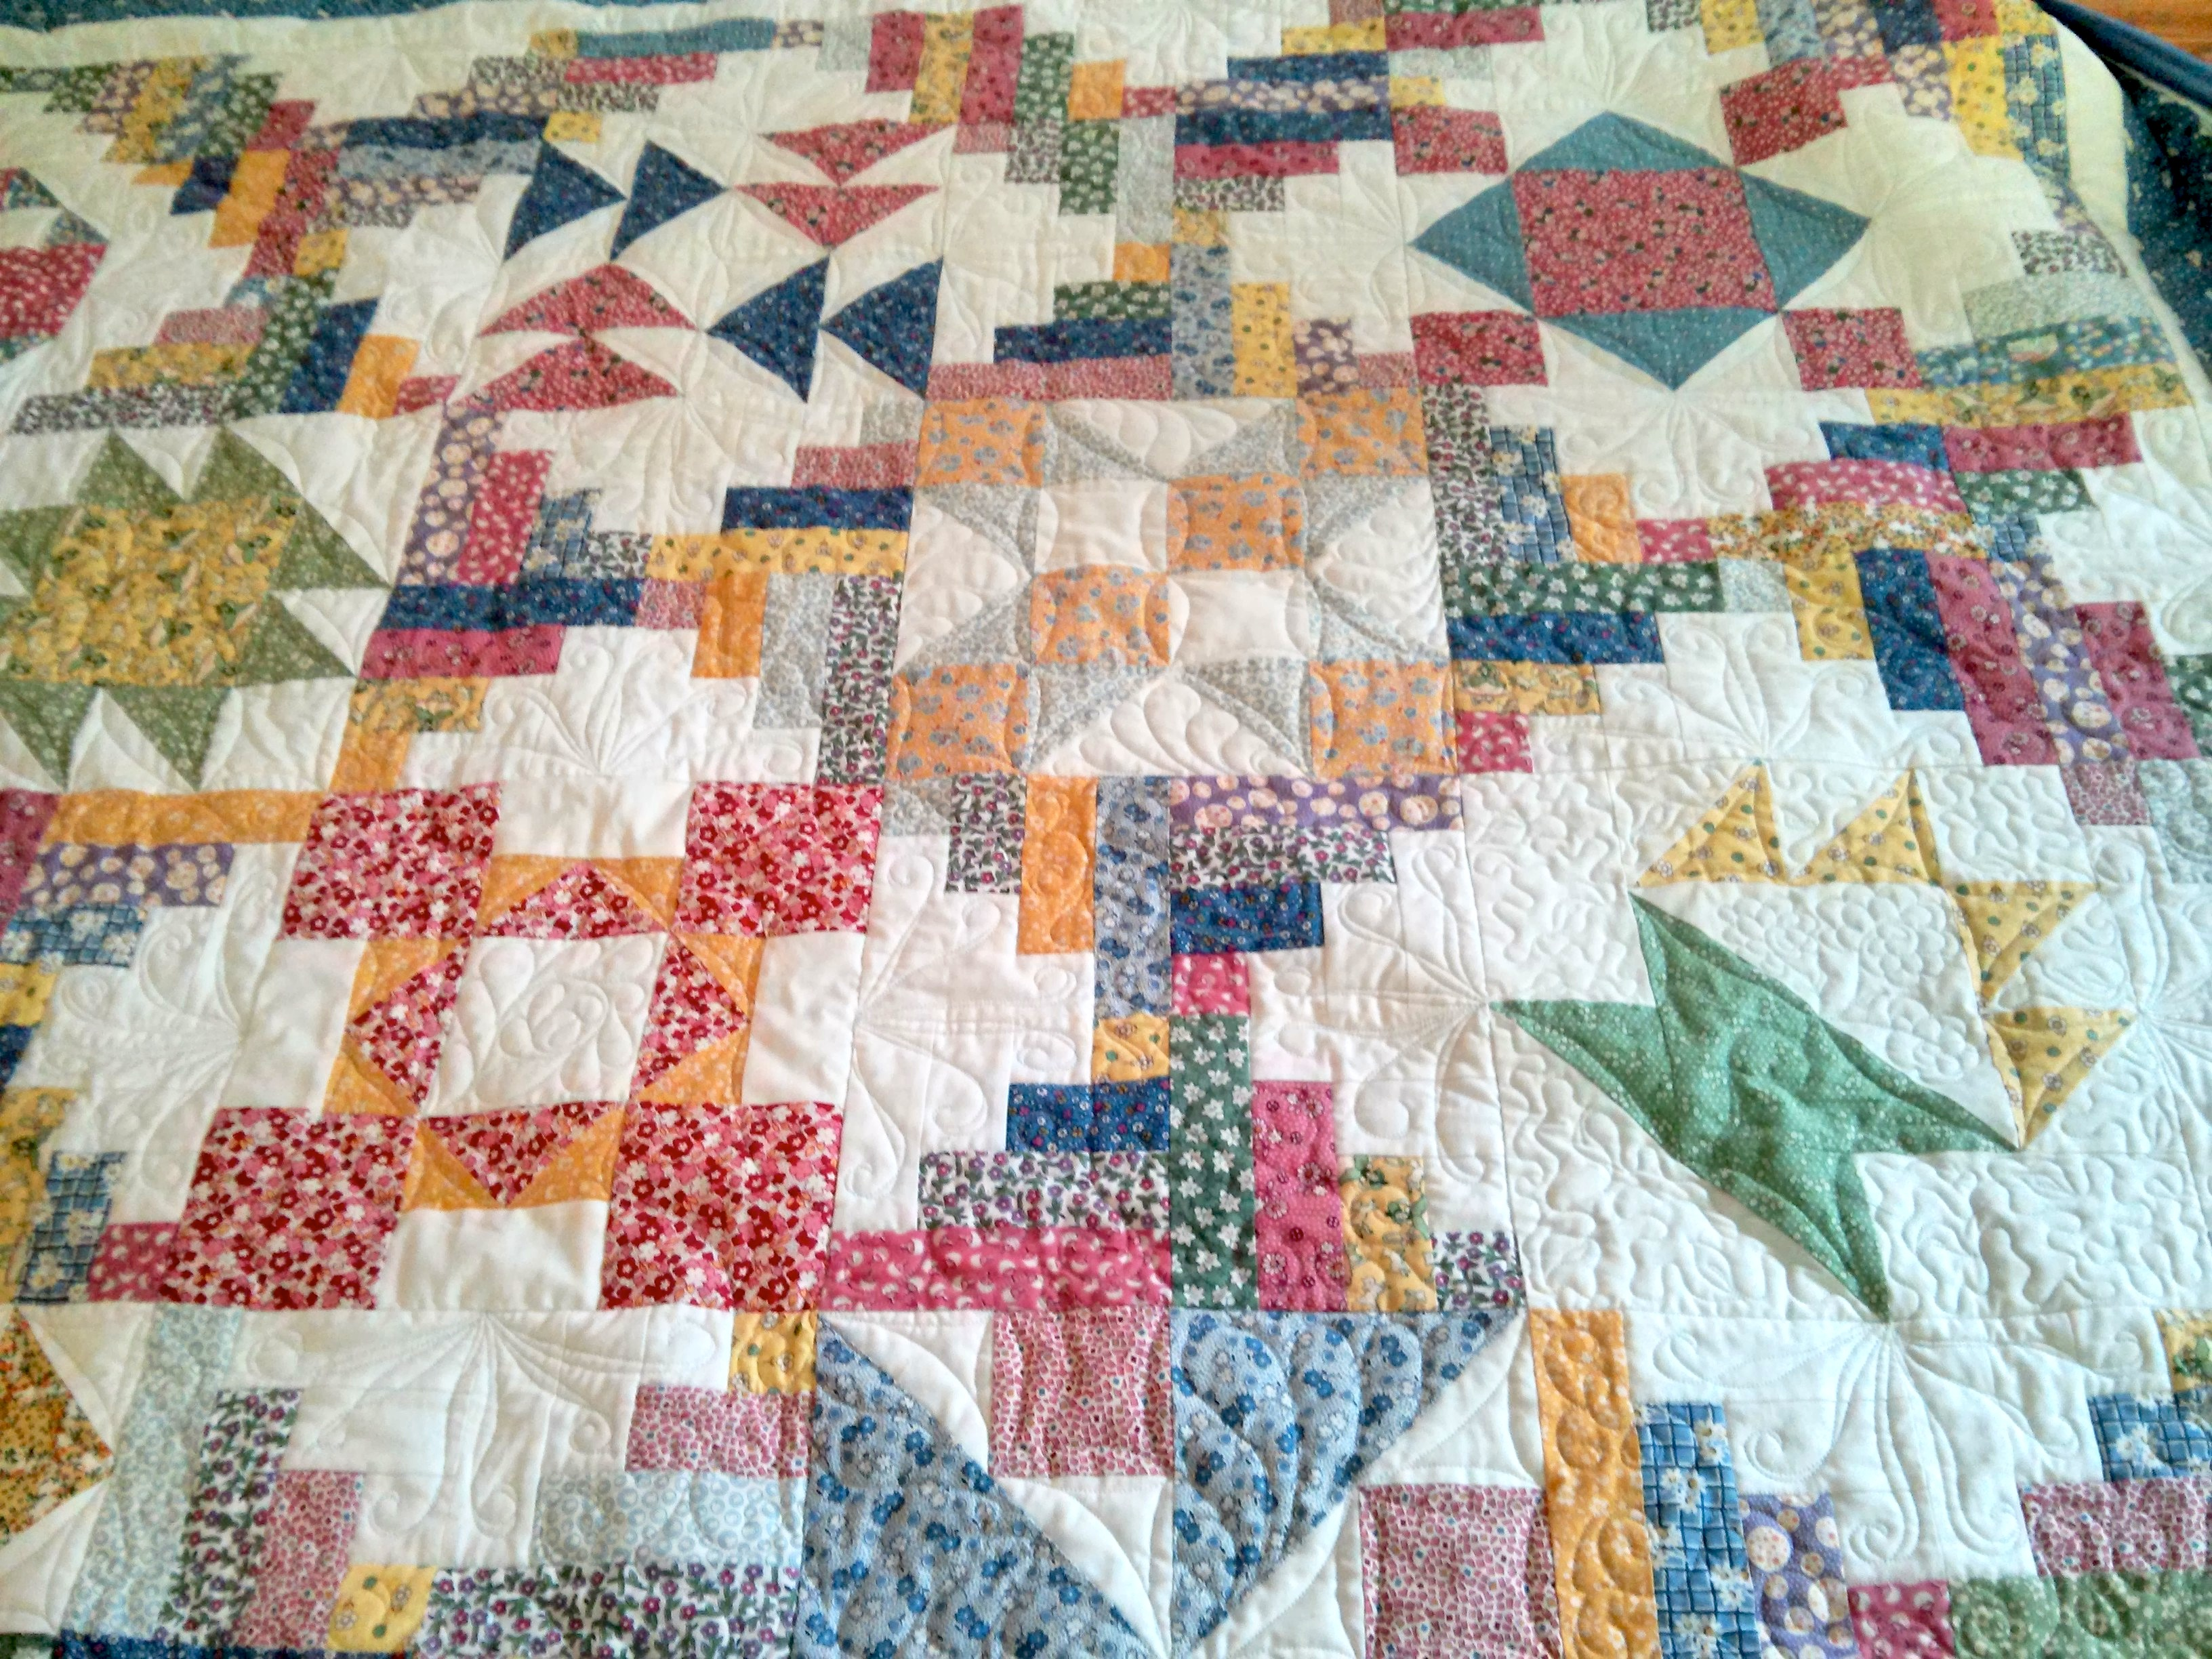 backed favorite free mod it motion m dots custom front quilts what the img pattern is quilt some of with this my sure i quilted birch insets blocks not loopy